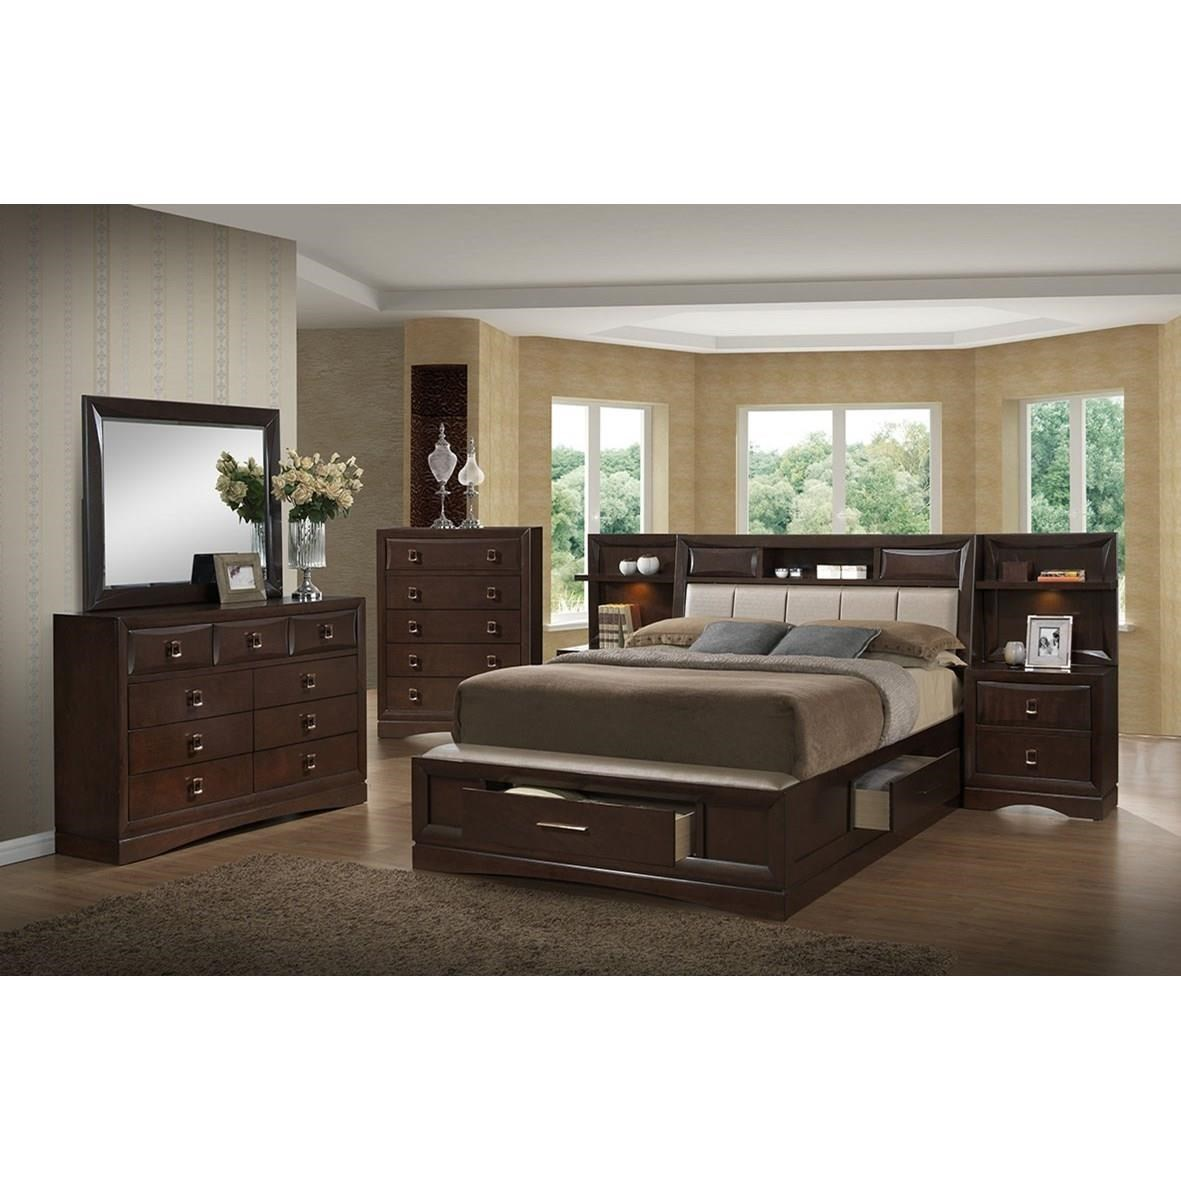 Holland House FranklinQueen 6 Piece Bedroom Group